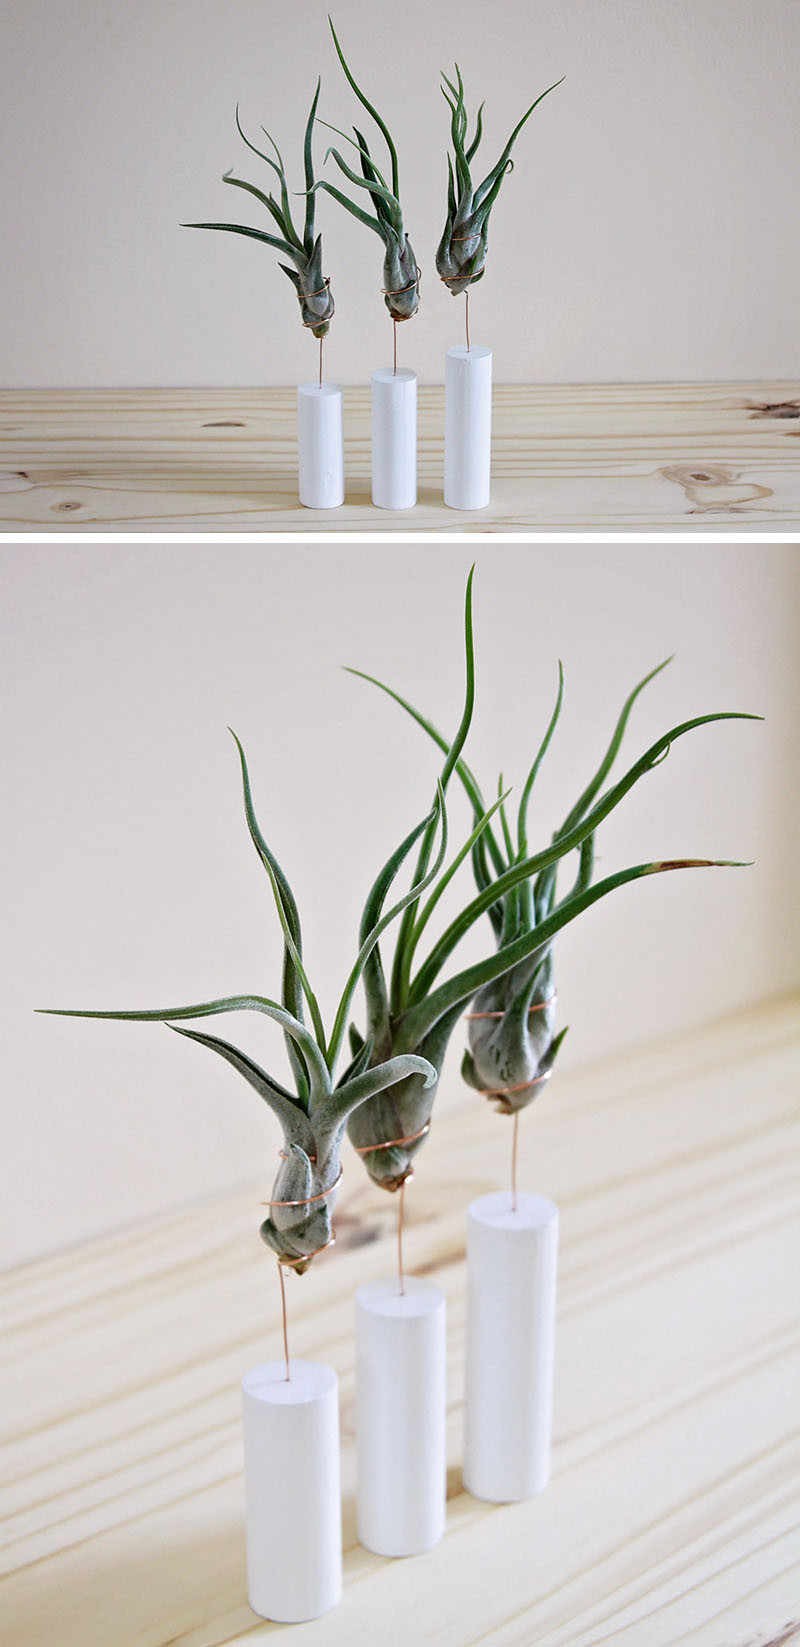 12 Elegant Ways To Bring Air Plants Into Your Home // Simple stands are another way to display air plants.